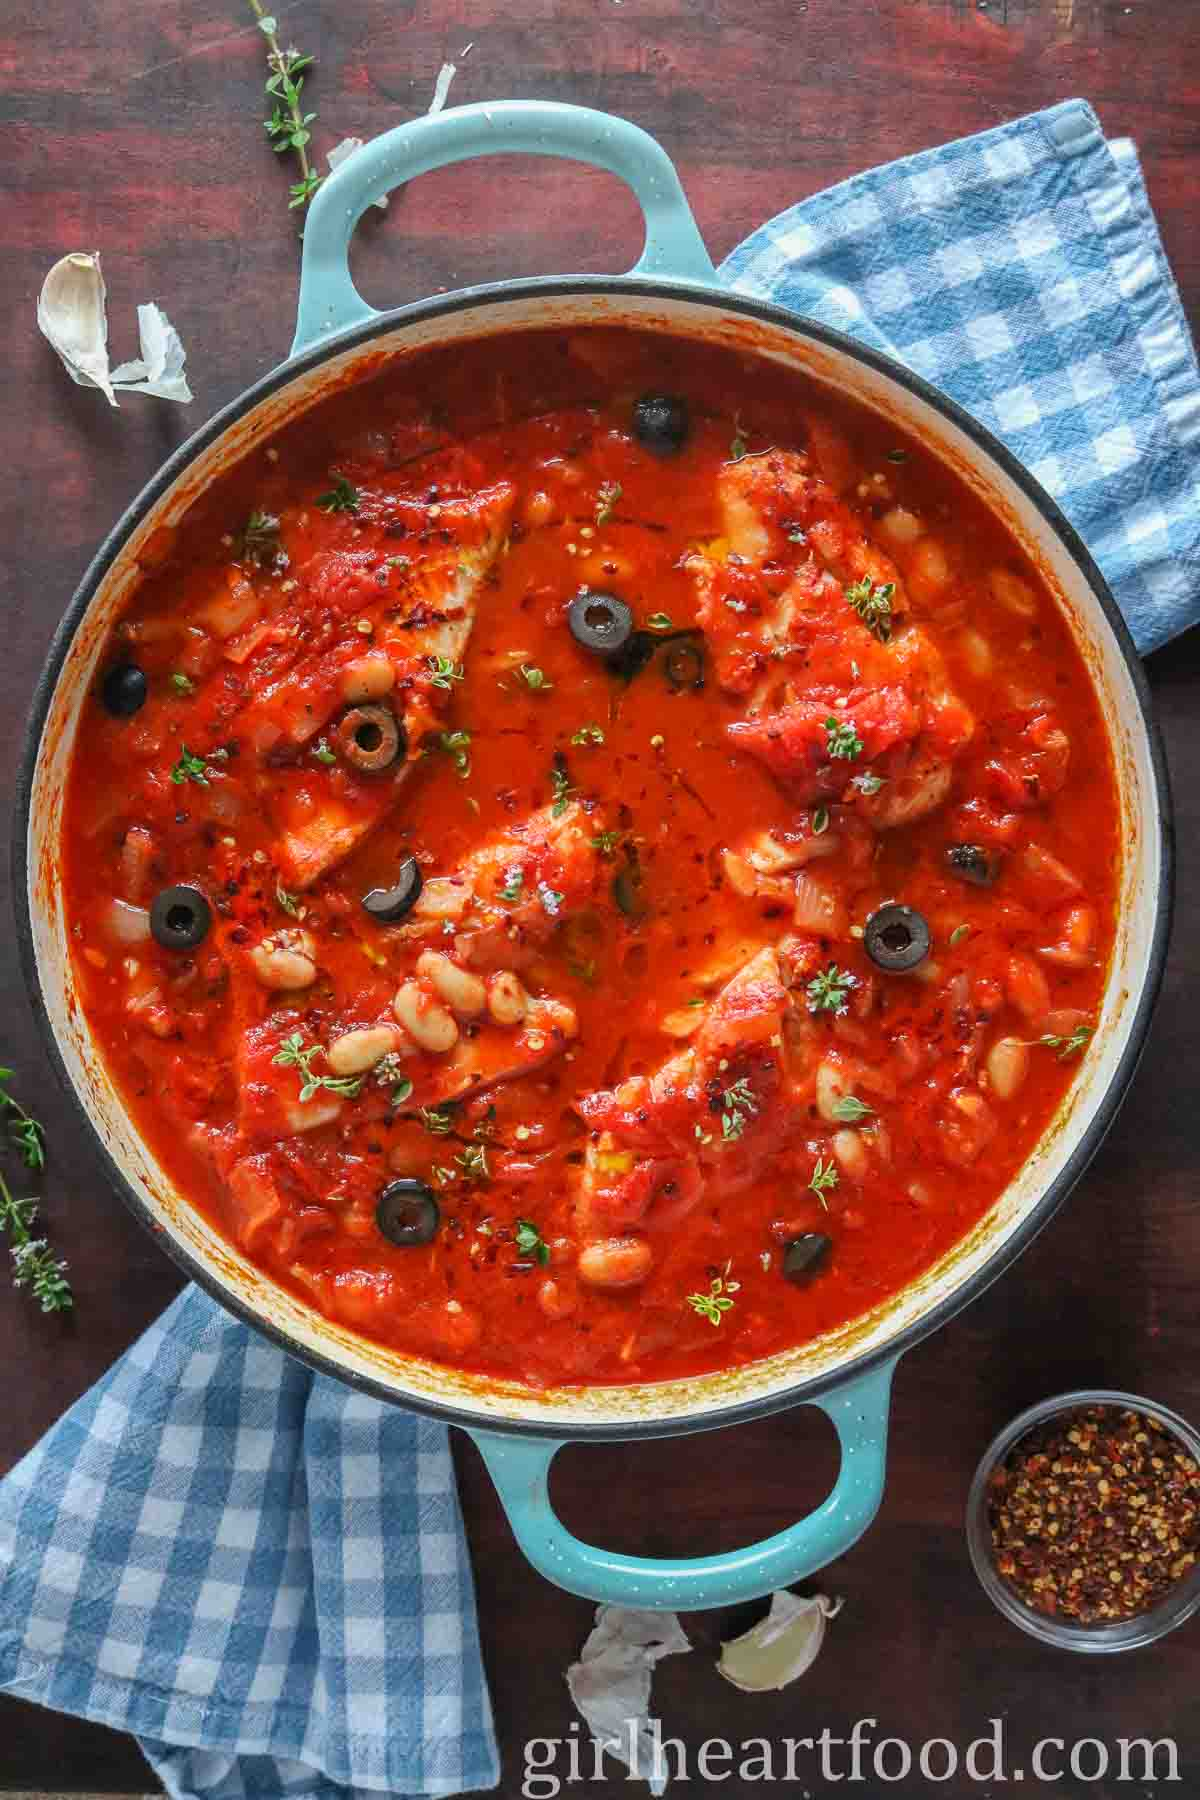 Large round blue dish with cod fillets in spicy tomato sauce with olives and beans.